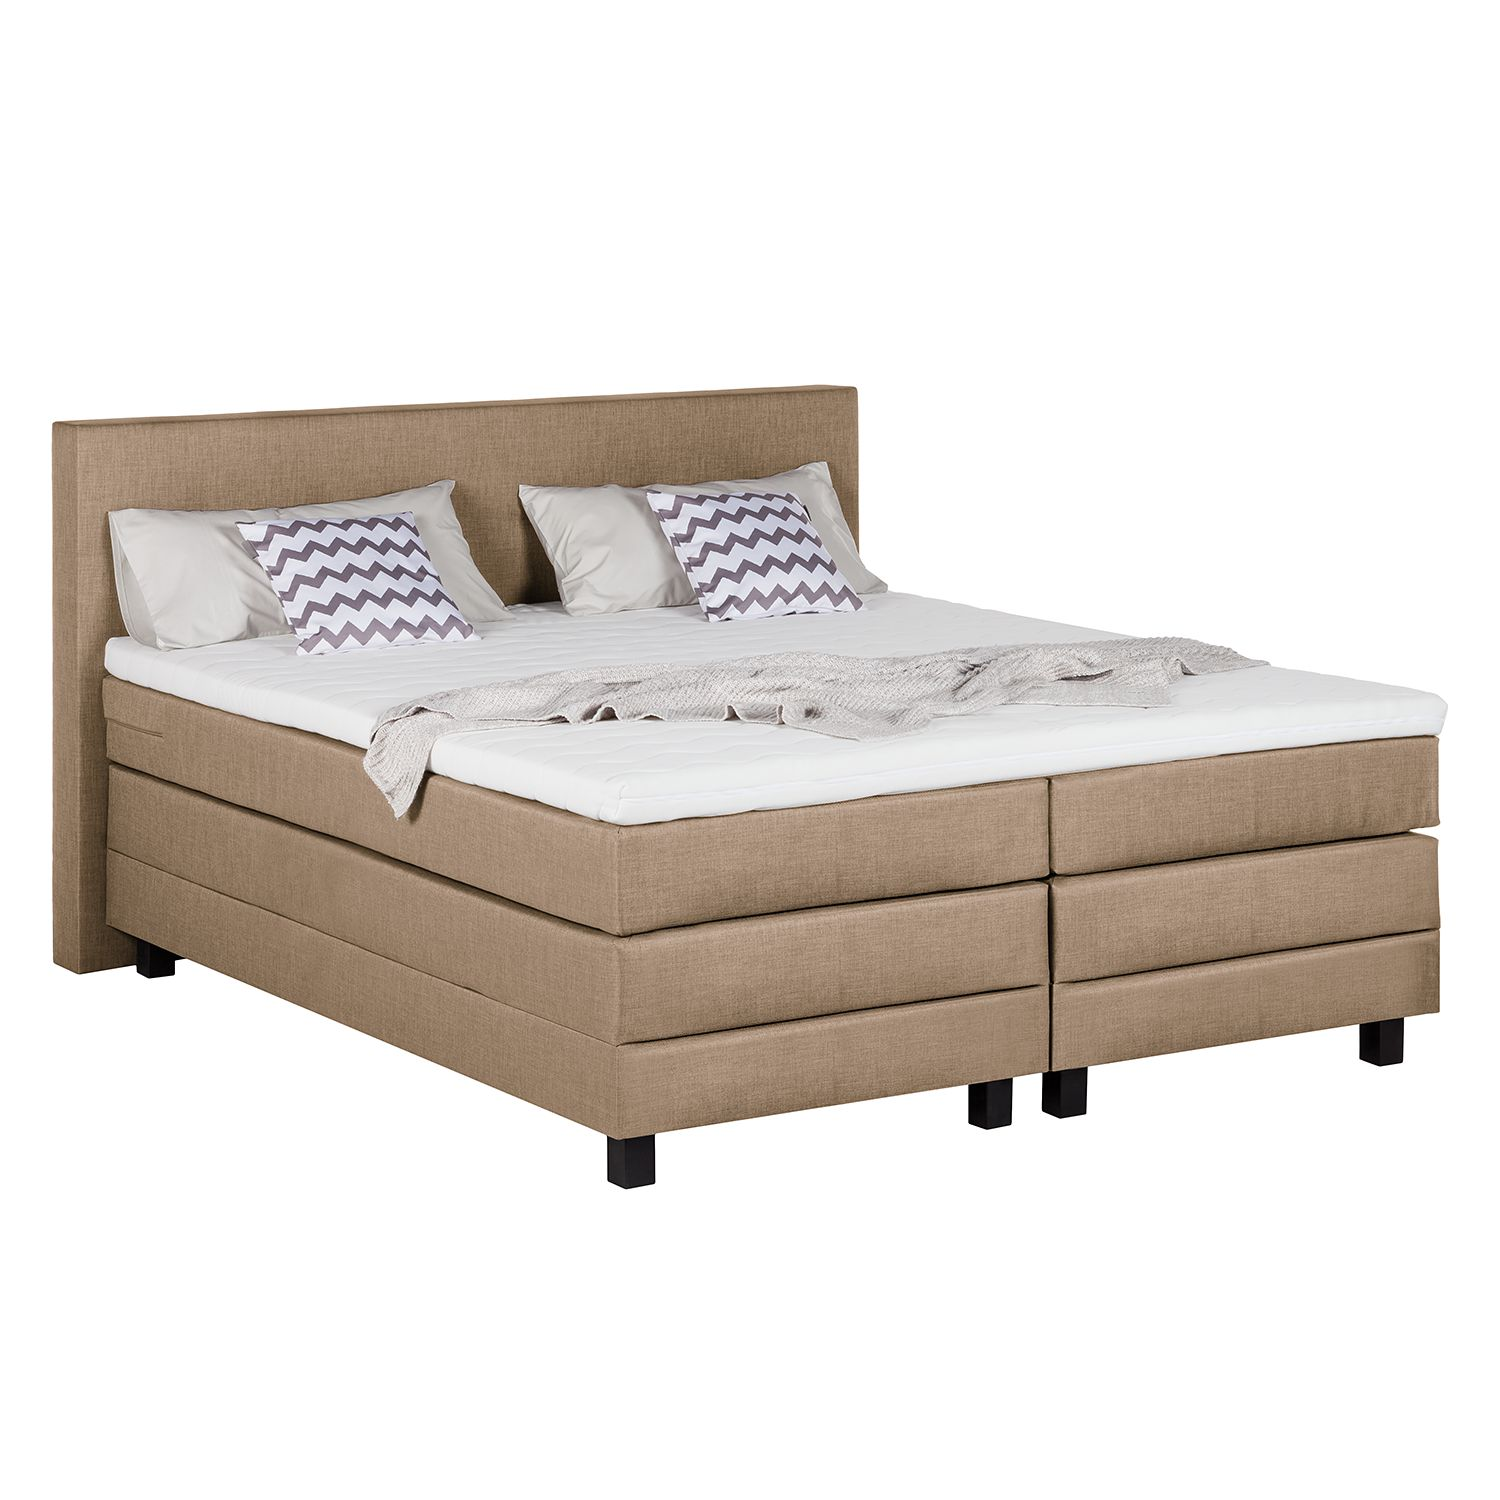 Boxspring Superior Night II - 140 x 200cm - H2 tot 80kg - Gemêleerd beige, Grand Selection